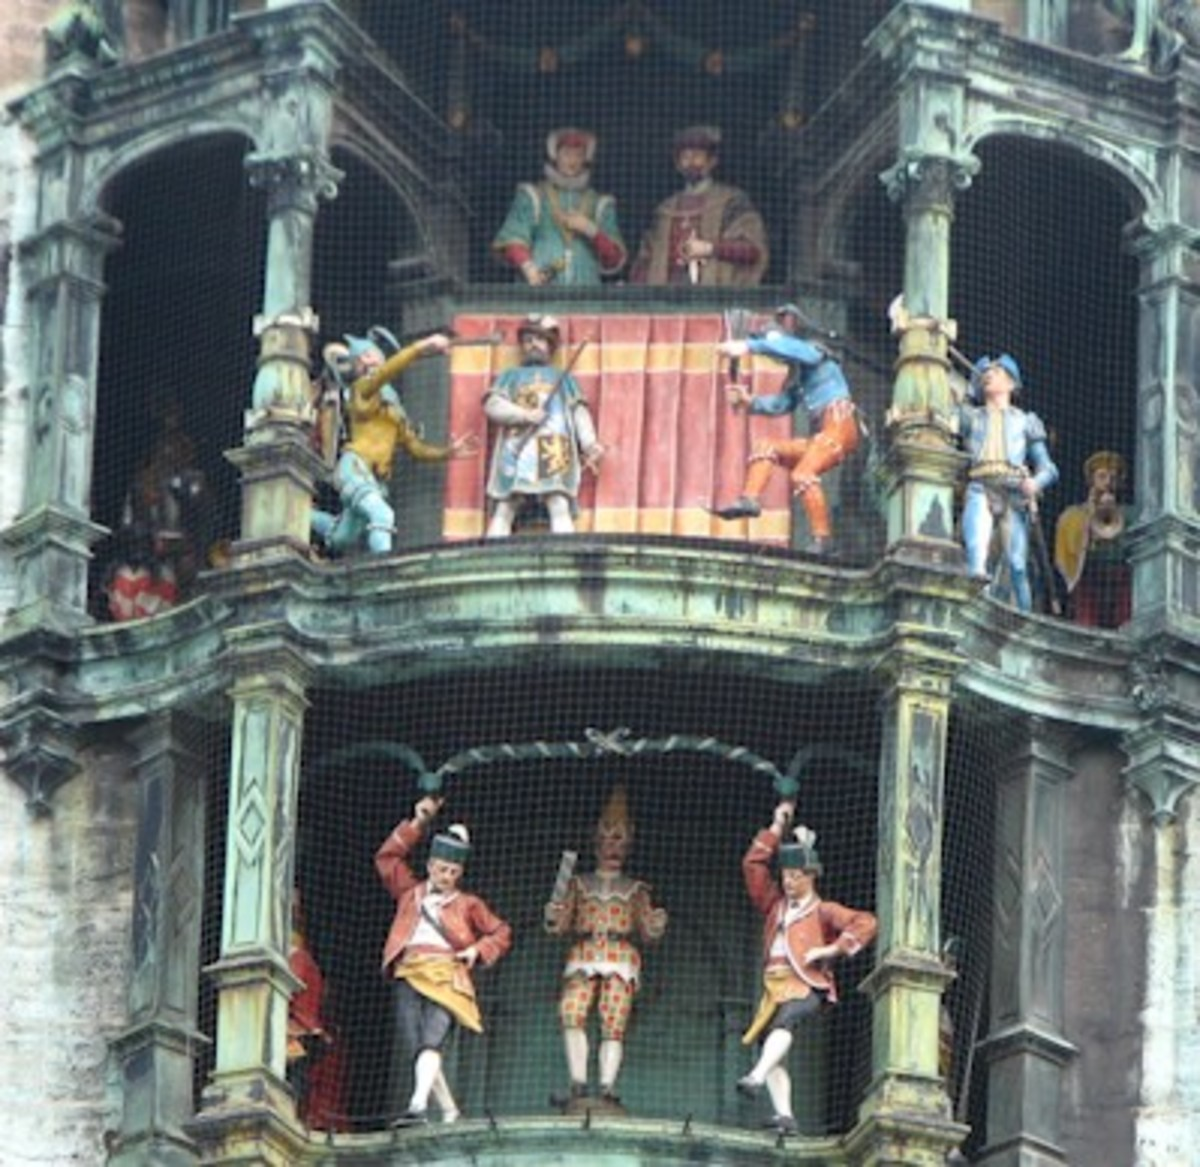 The medieval figurines of the Glockenspiel on the Rathaus in the Marienplatz that dance around each hour as the clock chimes.  This is a big tourist draw each hour.